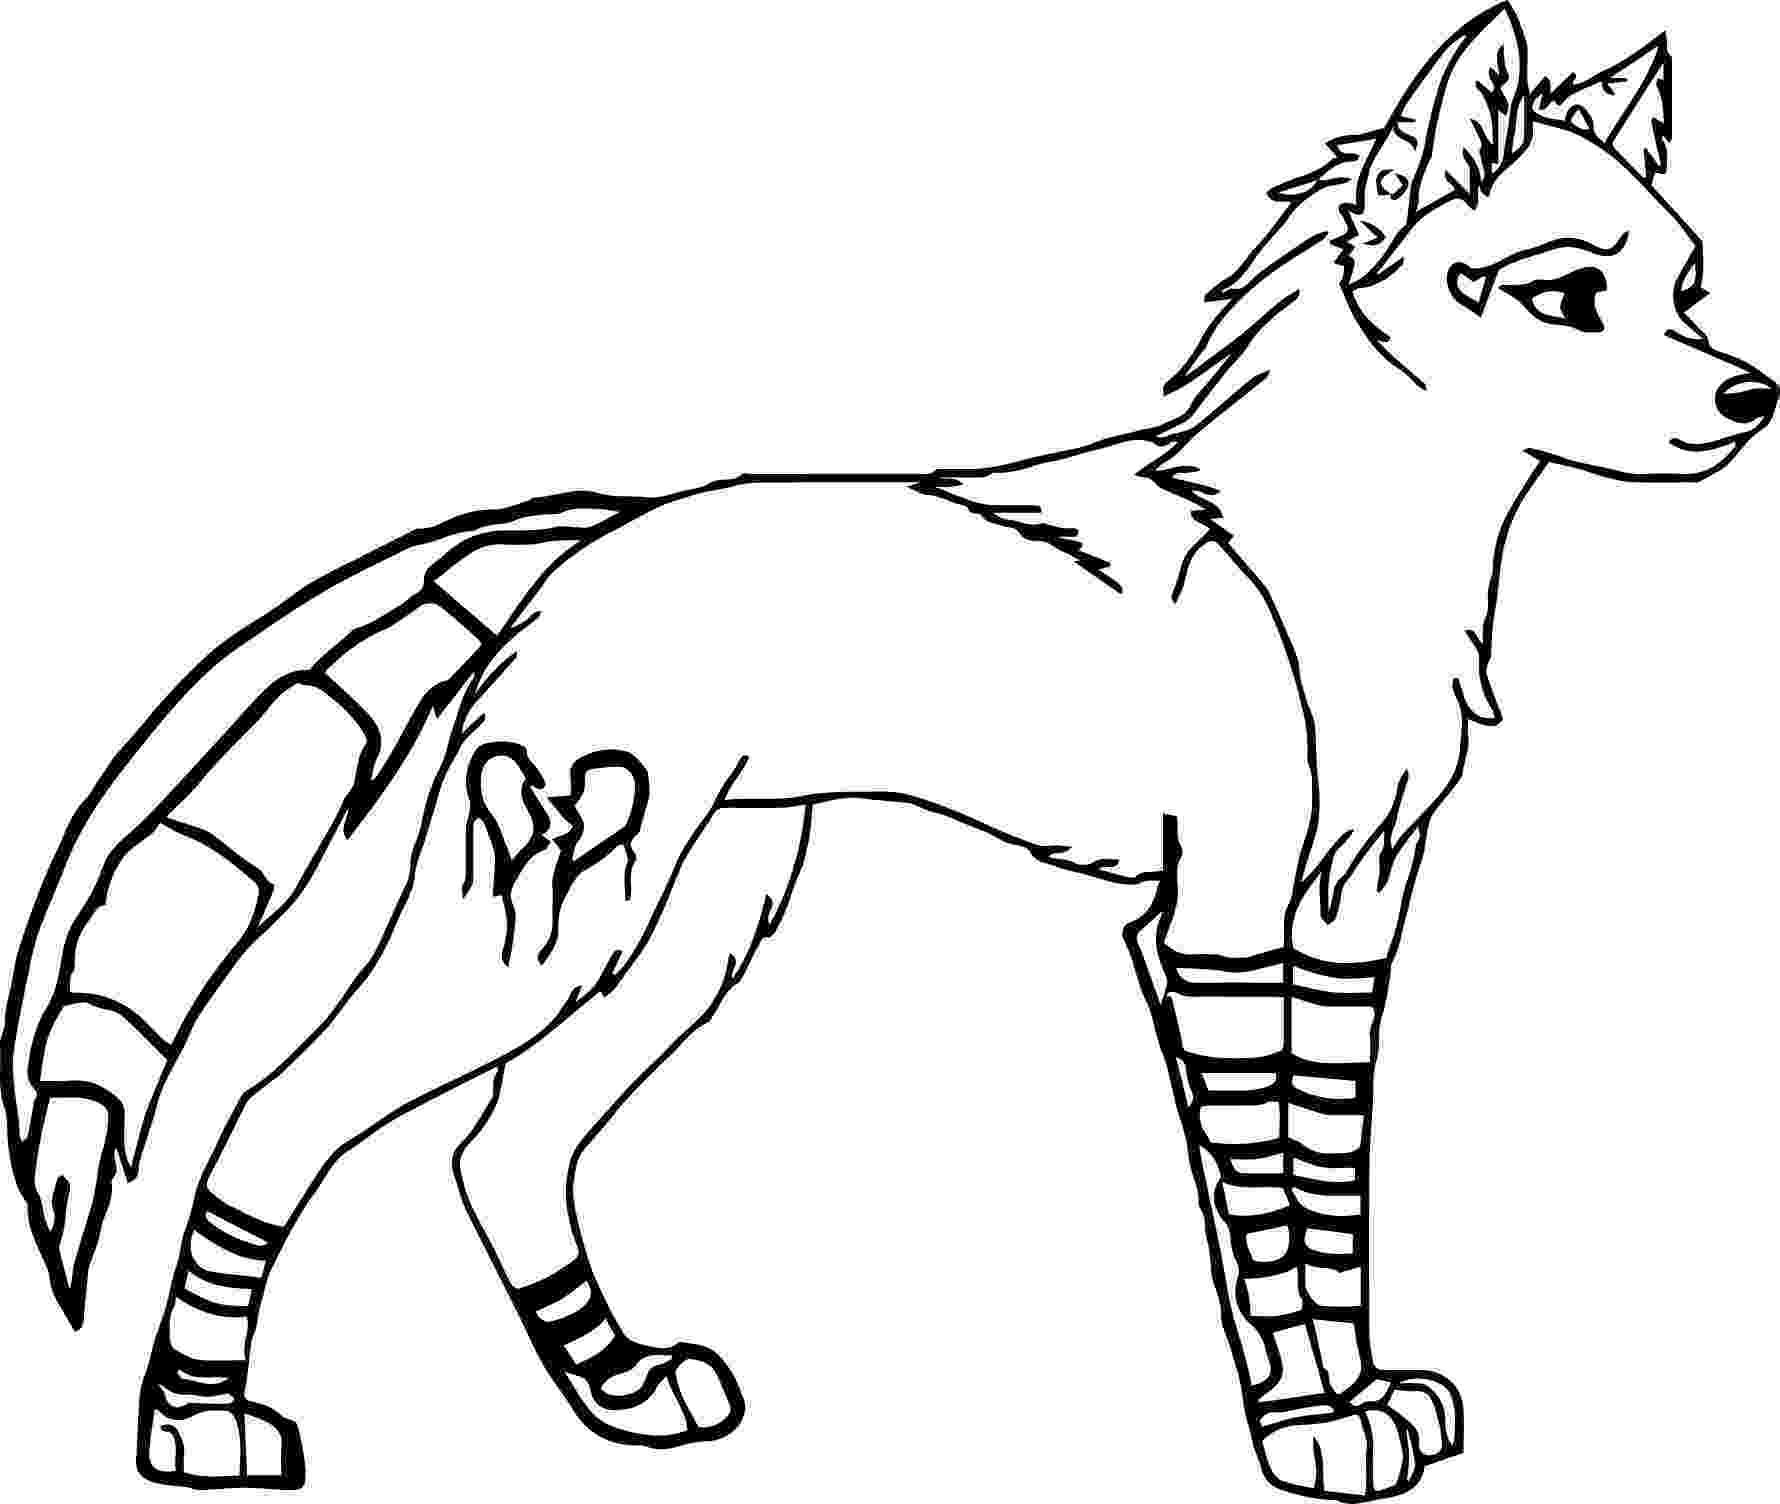 wolf coloring sheet wolf drawing for kids at getdrawings free download coloring wolf sheet